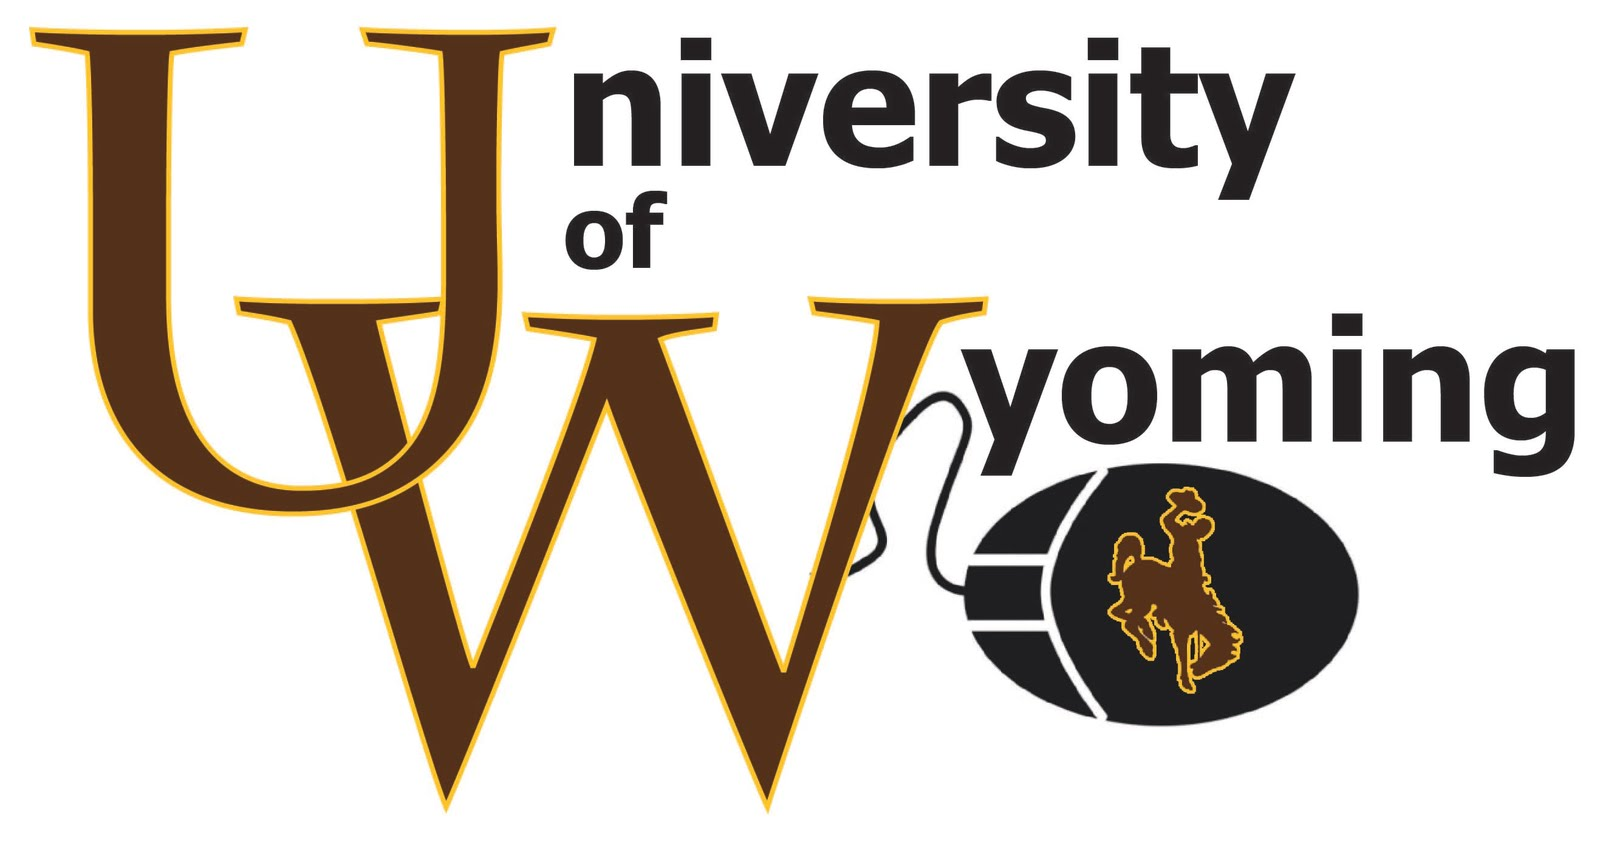 Designer University Of Wyoming Logo Recreation For Class Project 1600x842